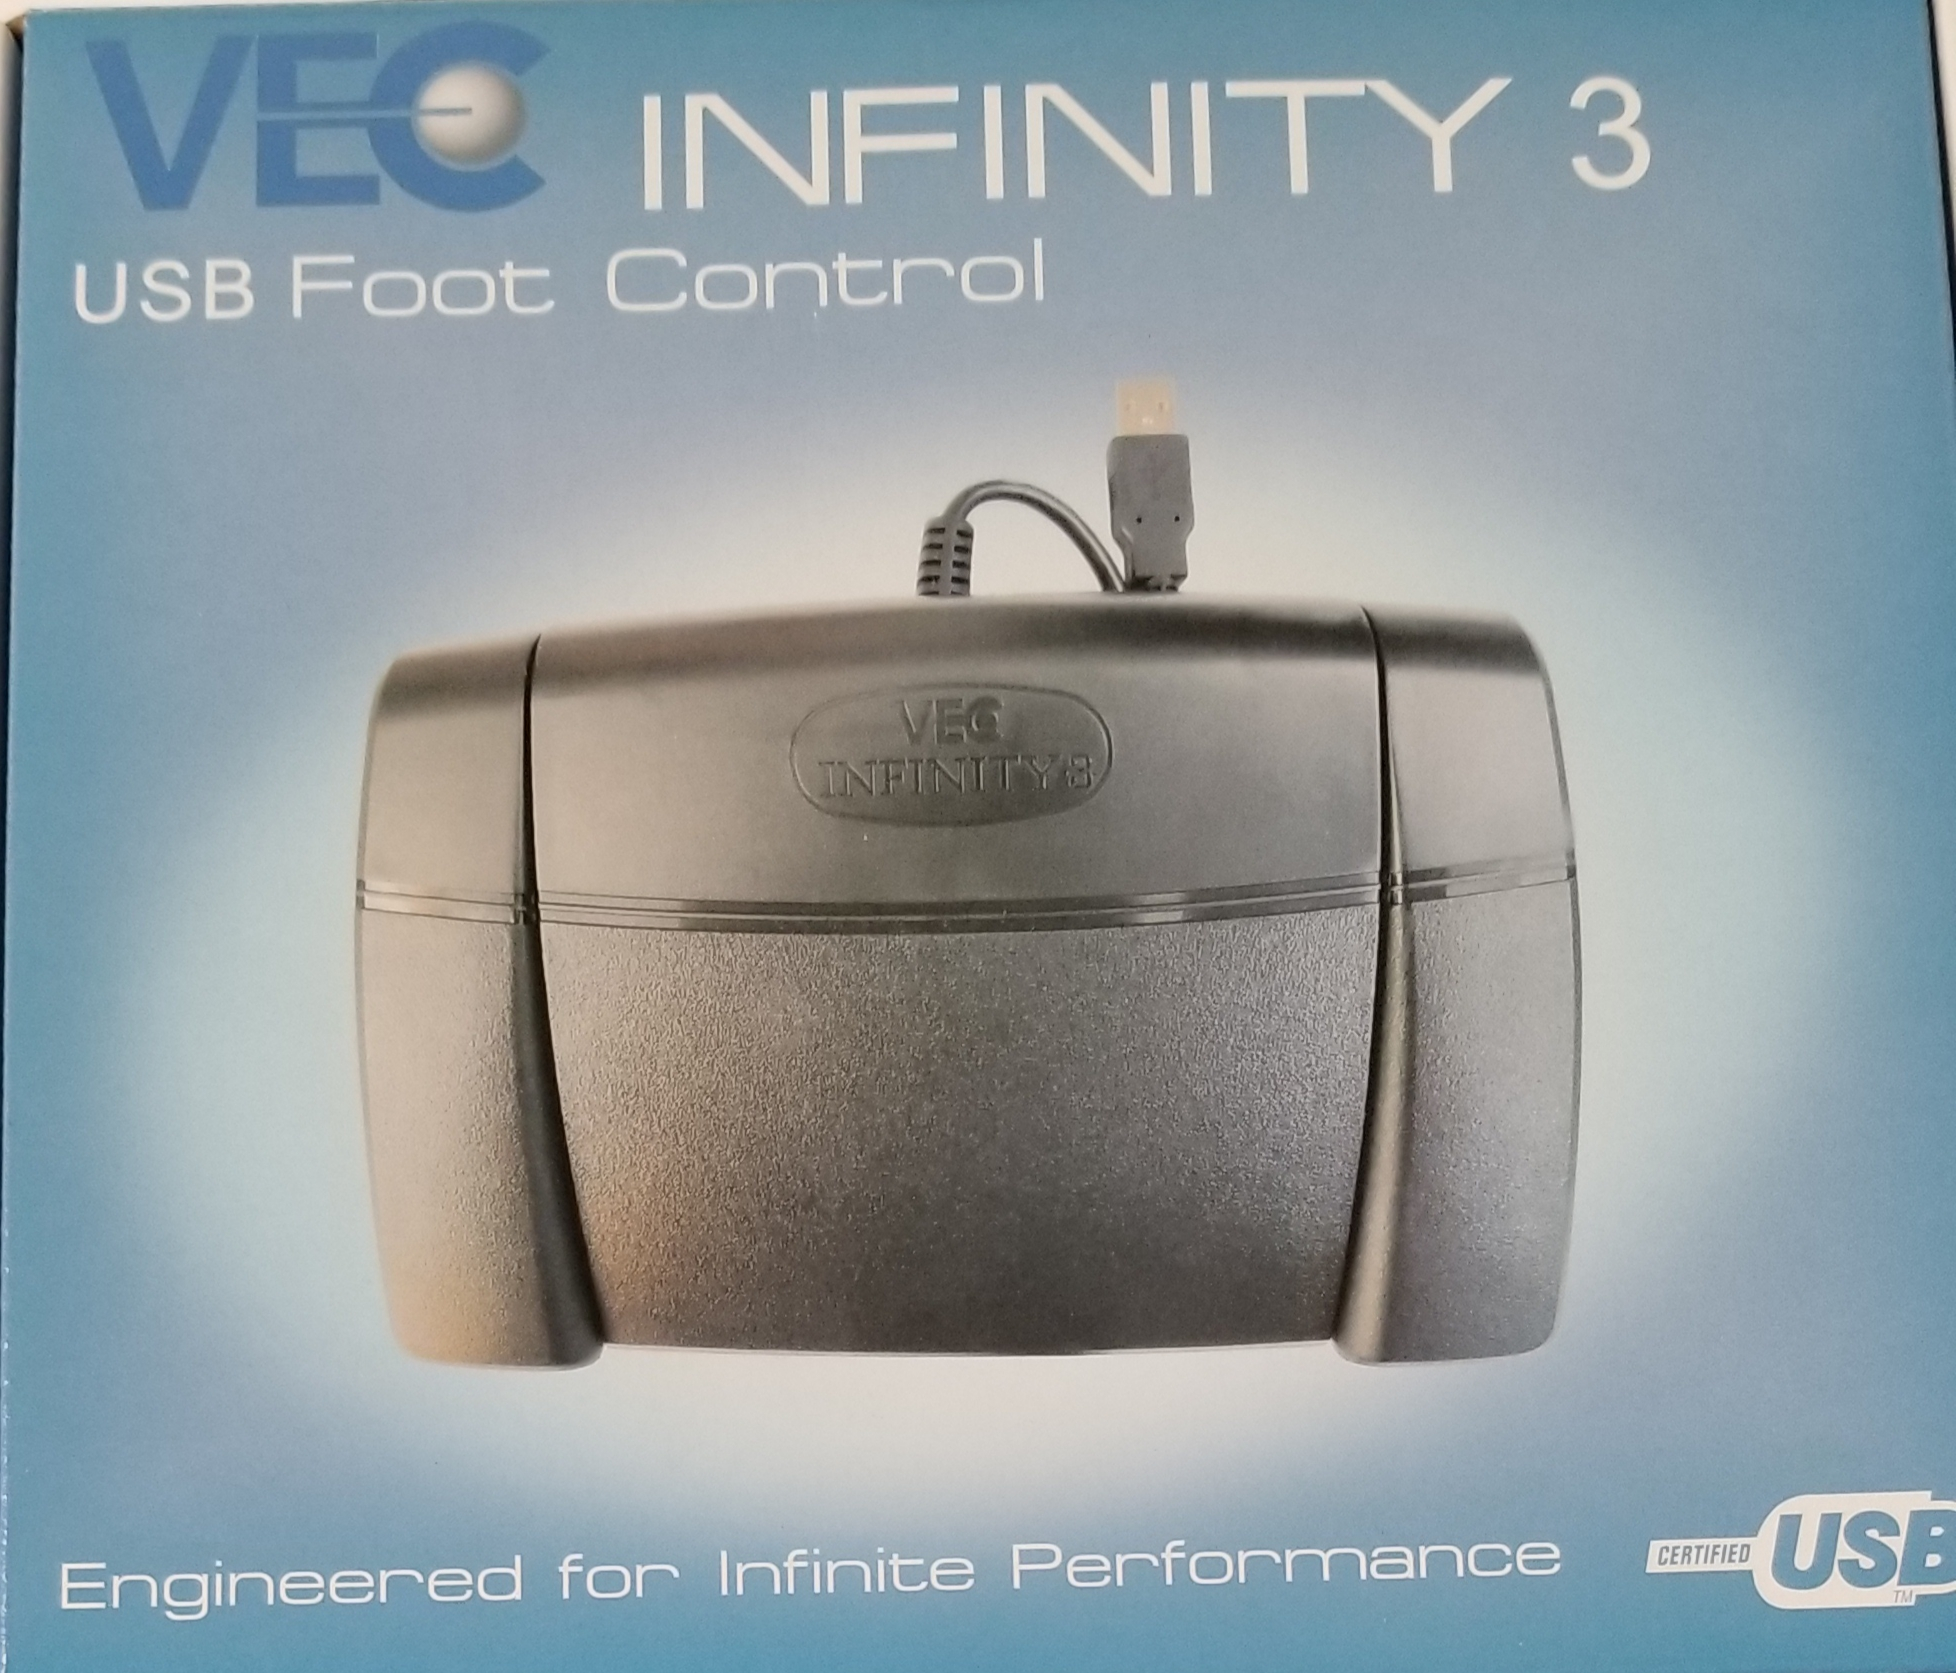 VEC-INFINITY 3 USB DIGITAL FOOT CONTROL